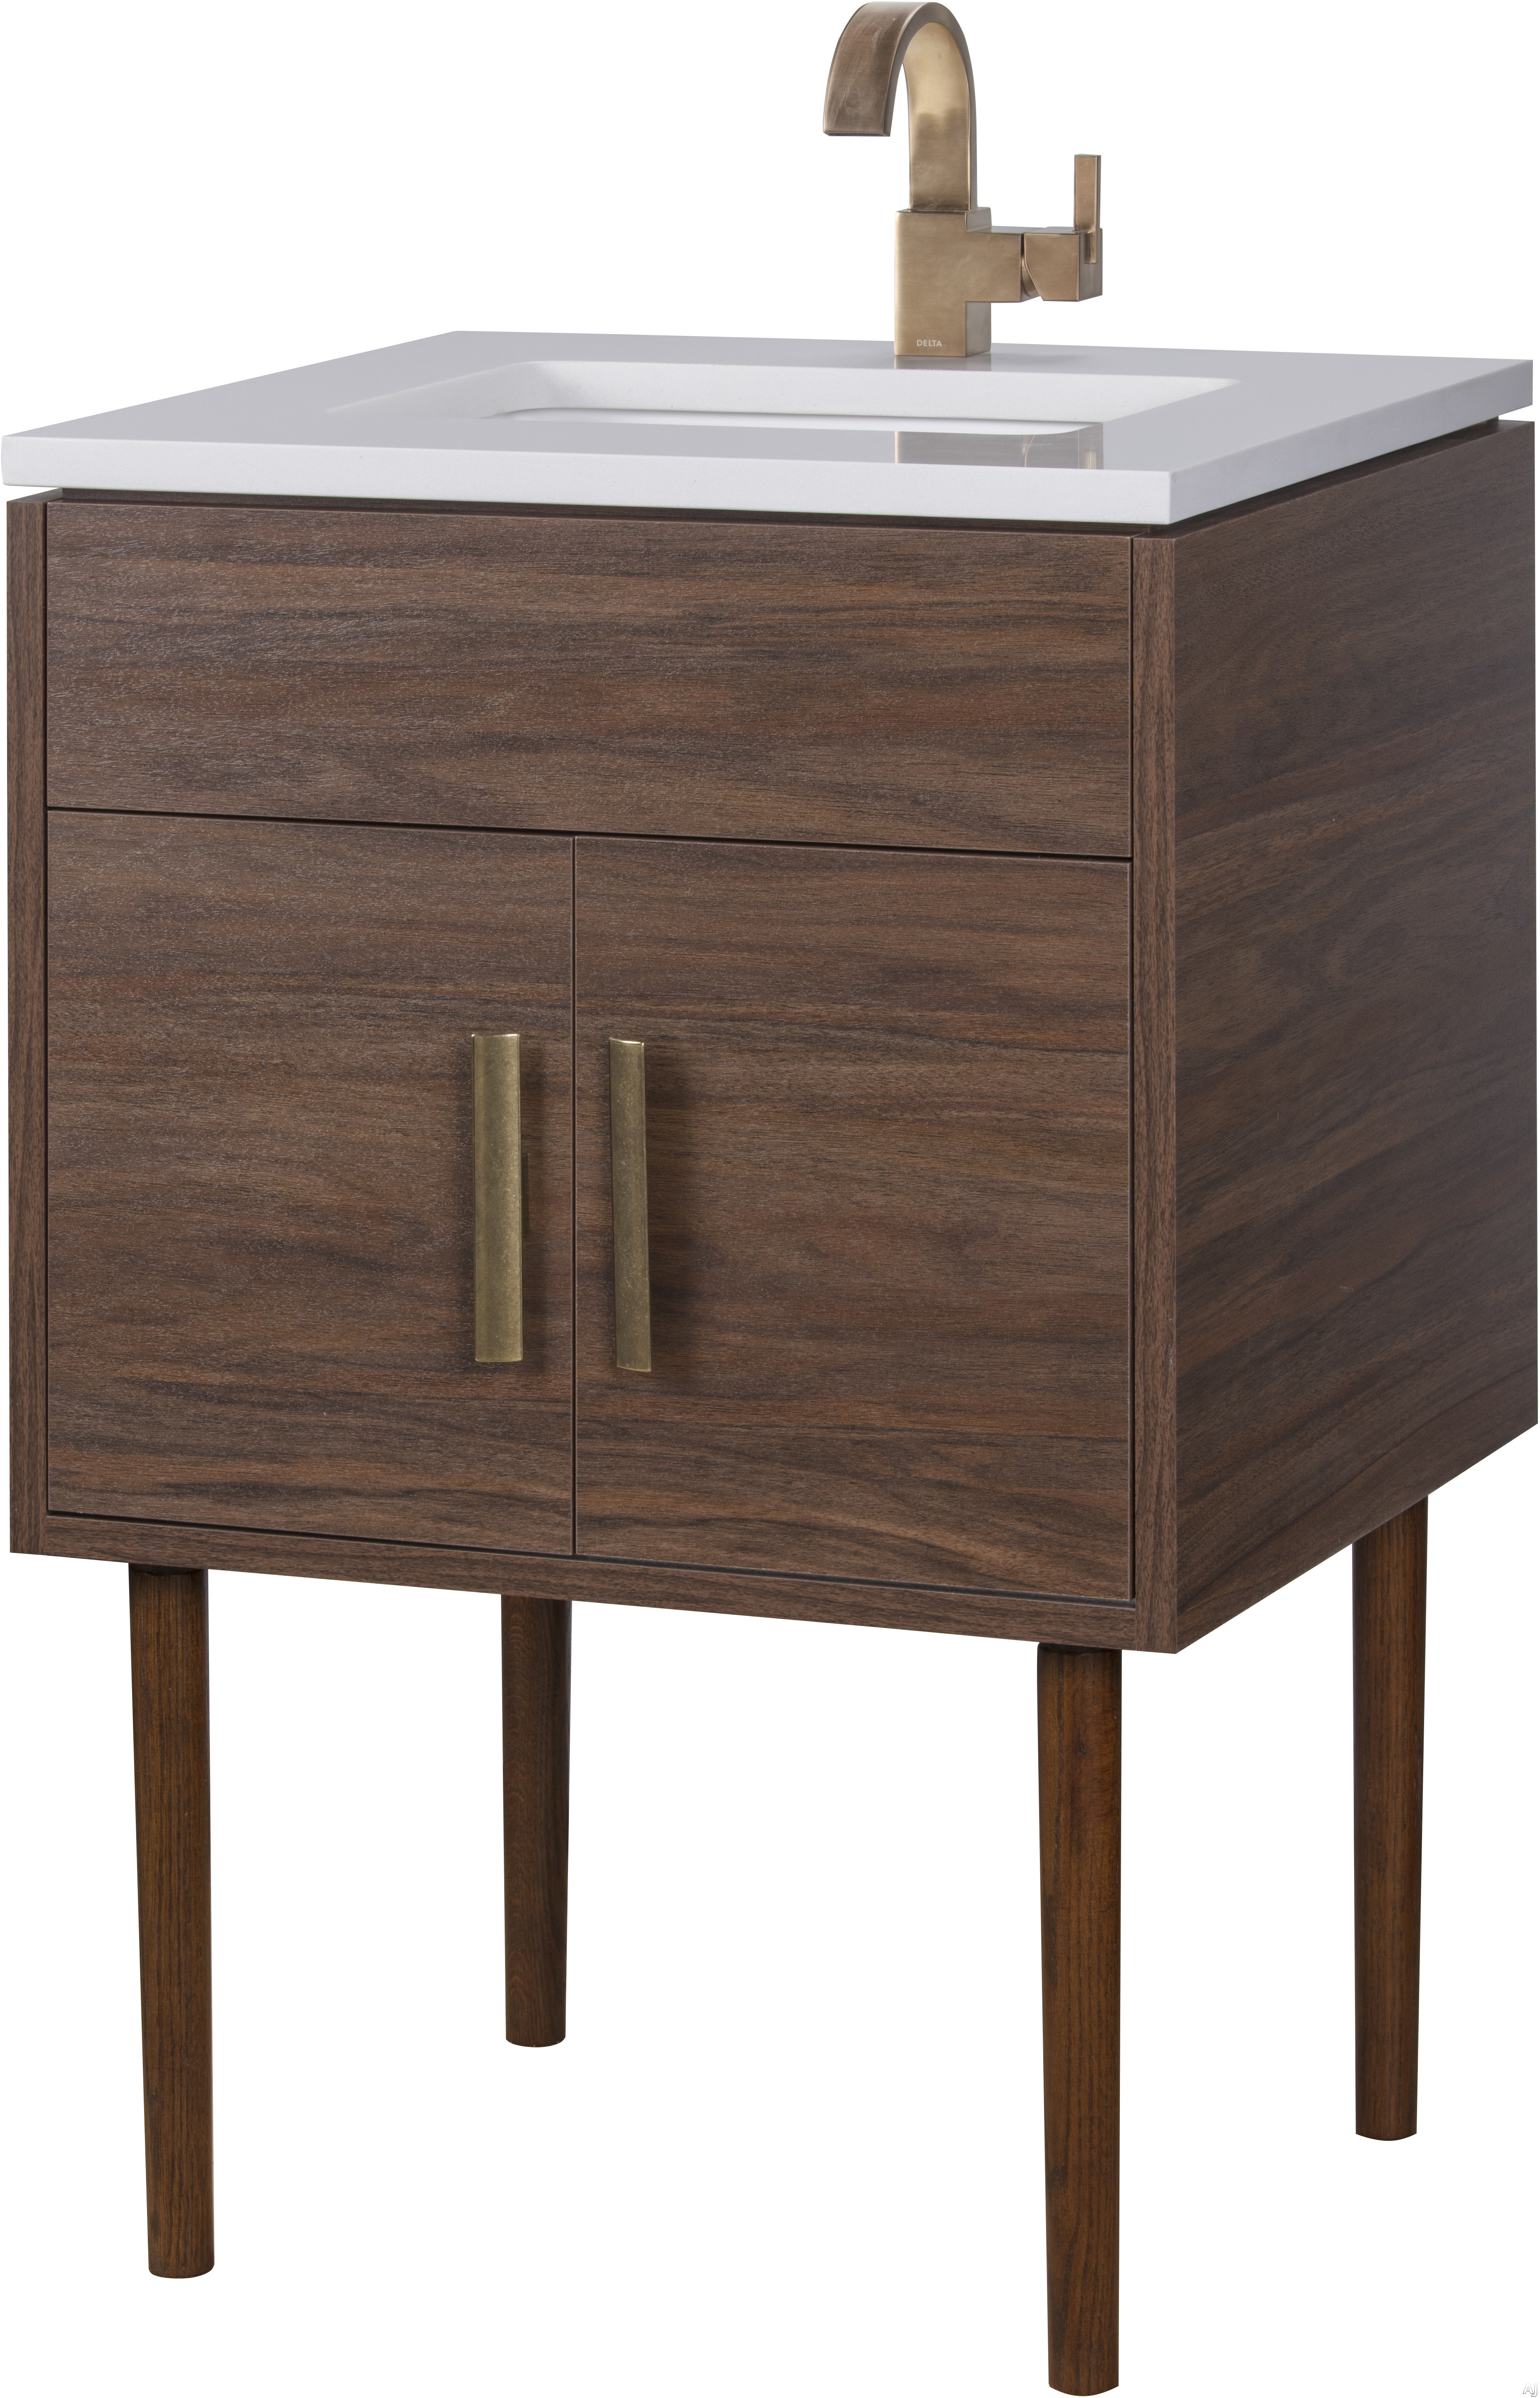 Cutler Kitchen & Bath Garland MIDCNT24 24 Inch Freestanding Bathroom Vanity with 2 Soft Close Doors, Countertop and Sink and European Soft-Close Hardware